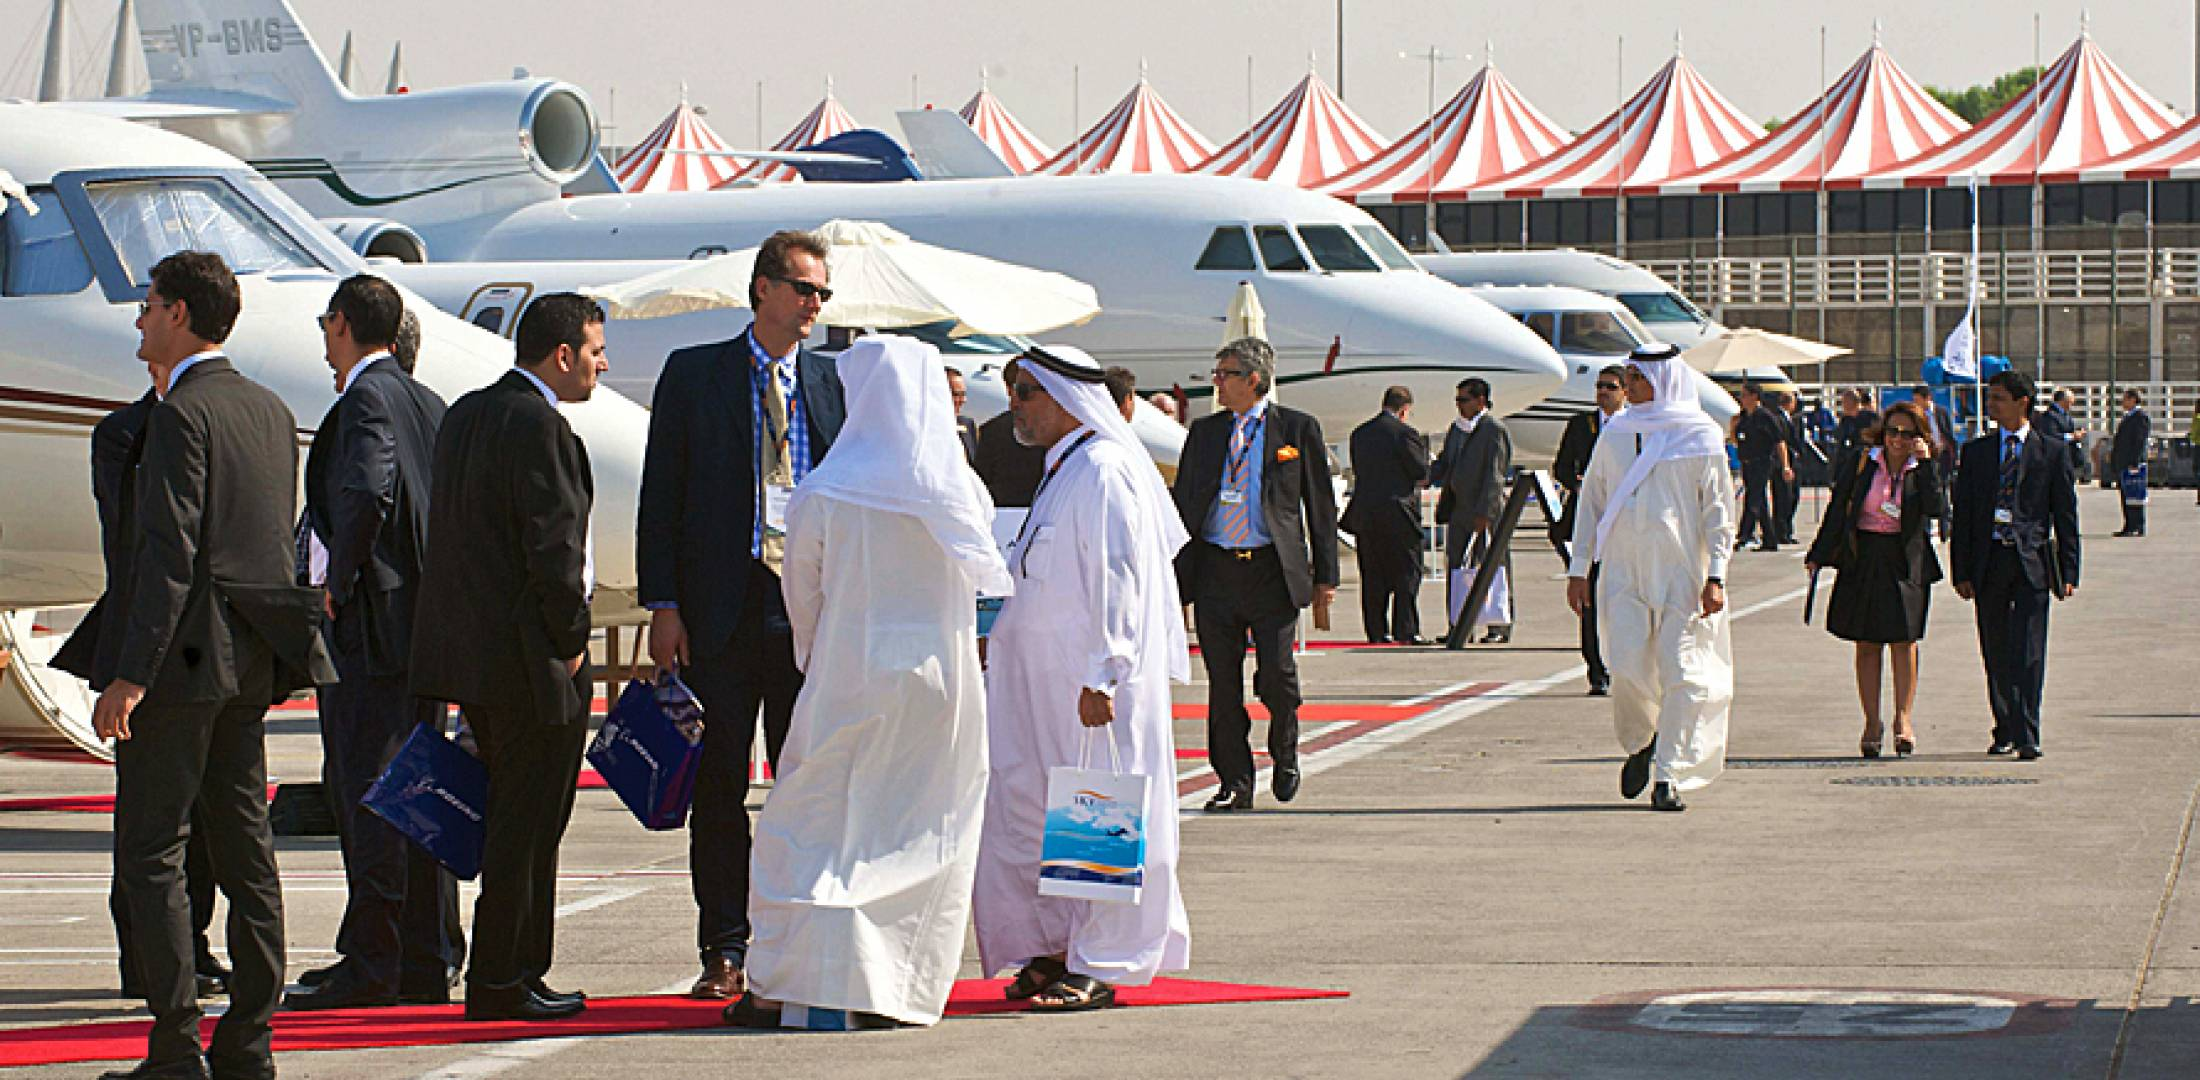 This year's Middle East Business Aviation show is enticing more participation...